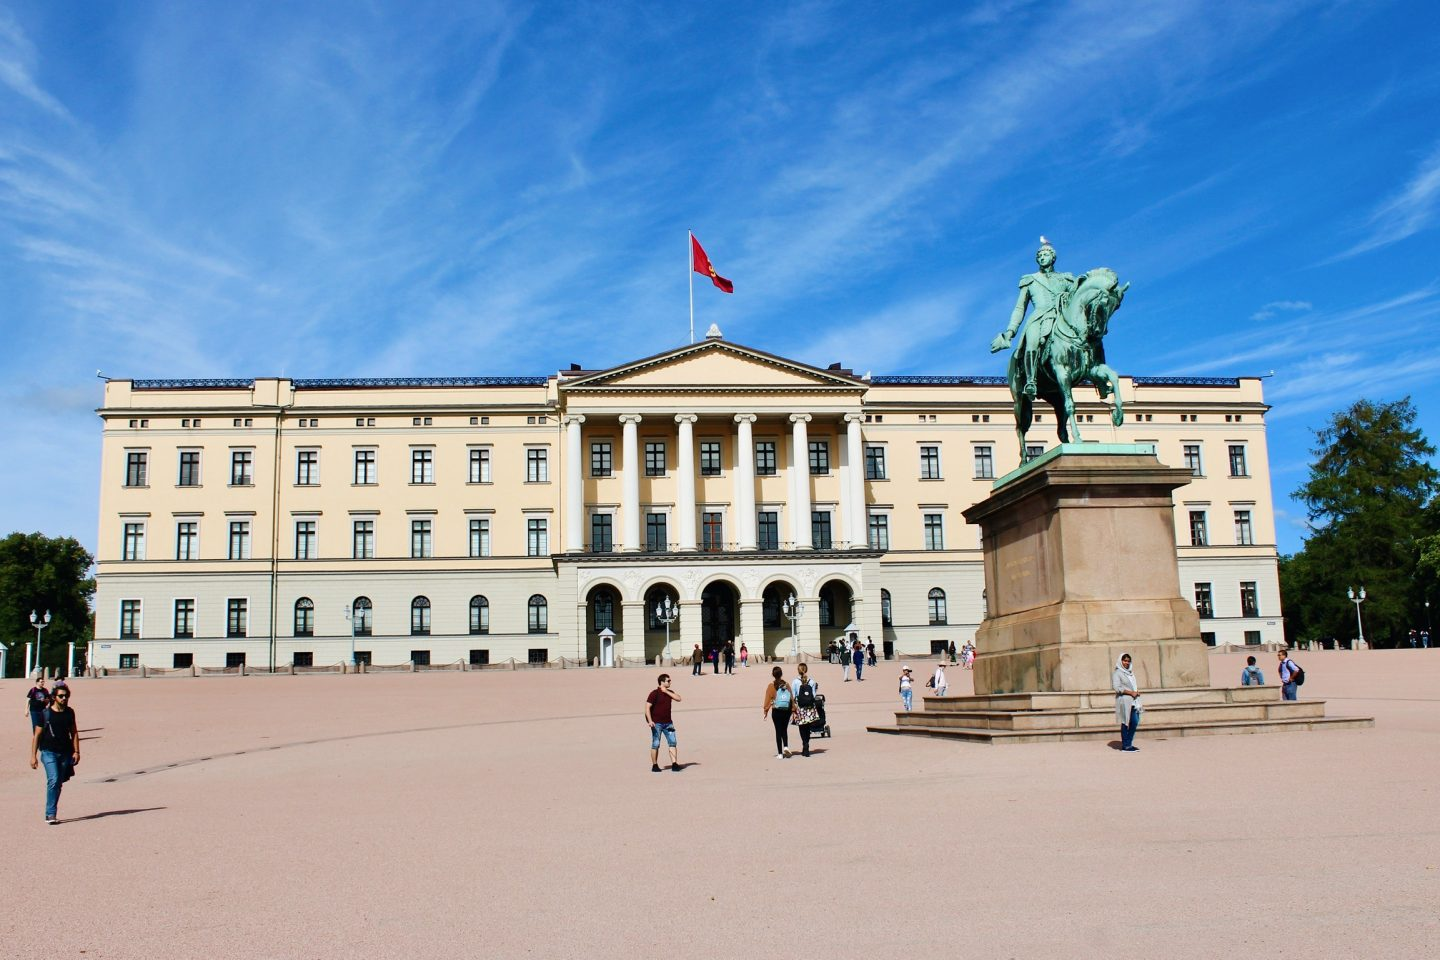 View of the Royal Palace in Oslo, Norway!